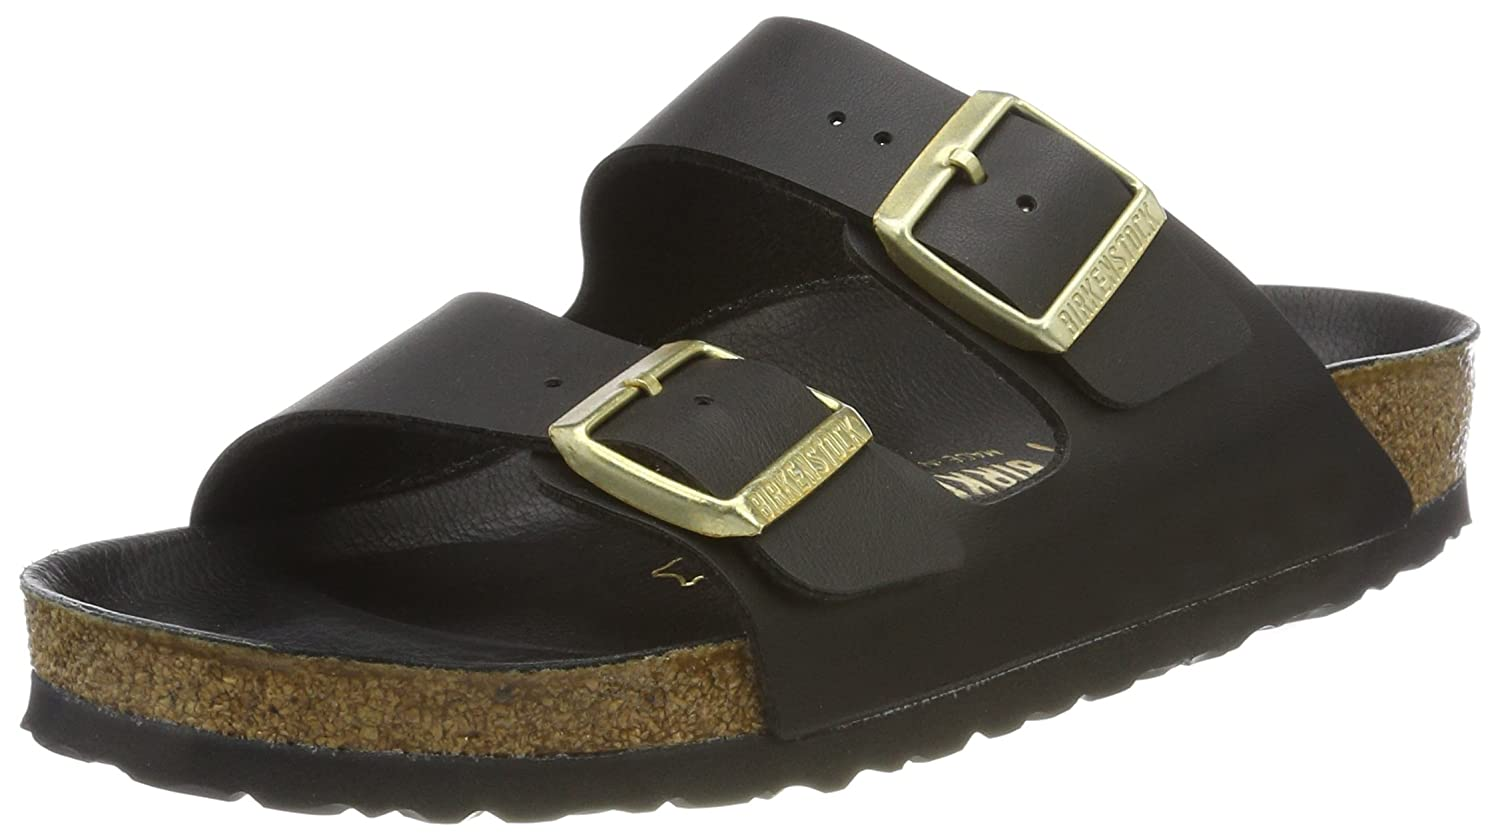 Birkenstock Arizona, Zapatos con Hebilla Unisex Adulto 39 EU (Normal)|Negro (Noir/Or Exquisite)